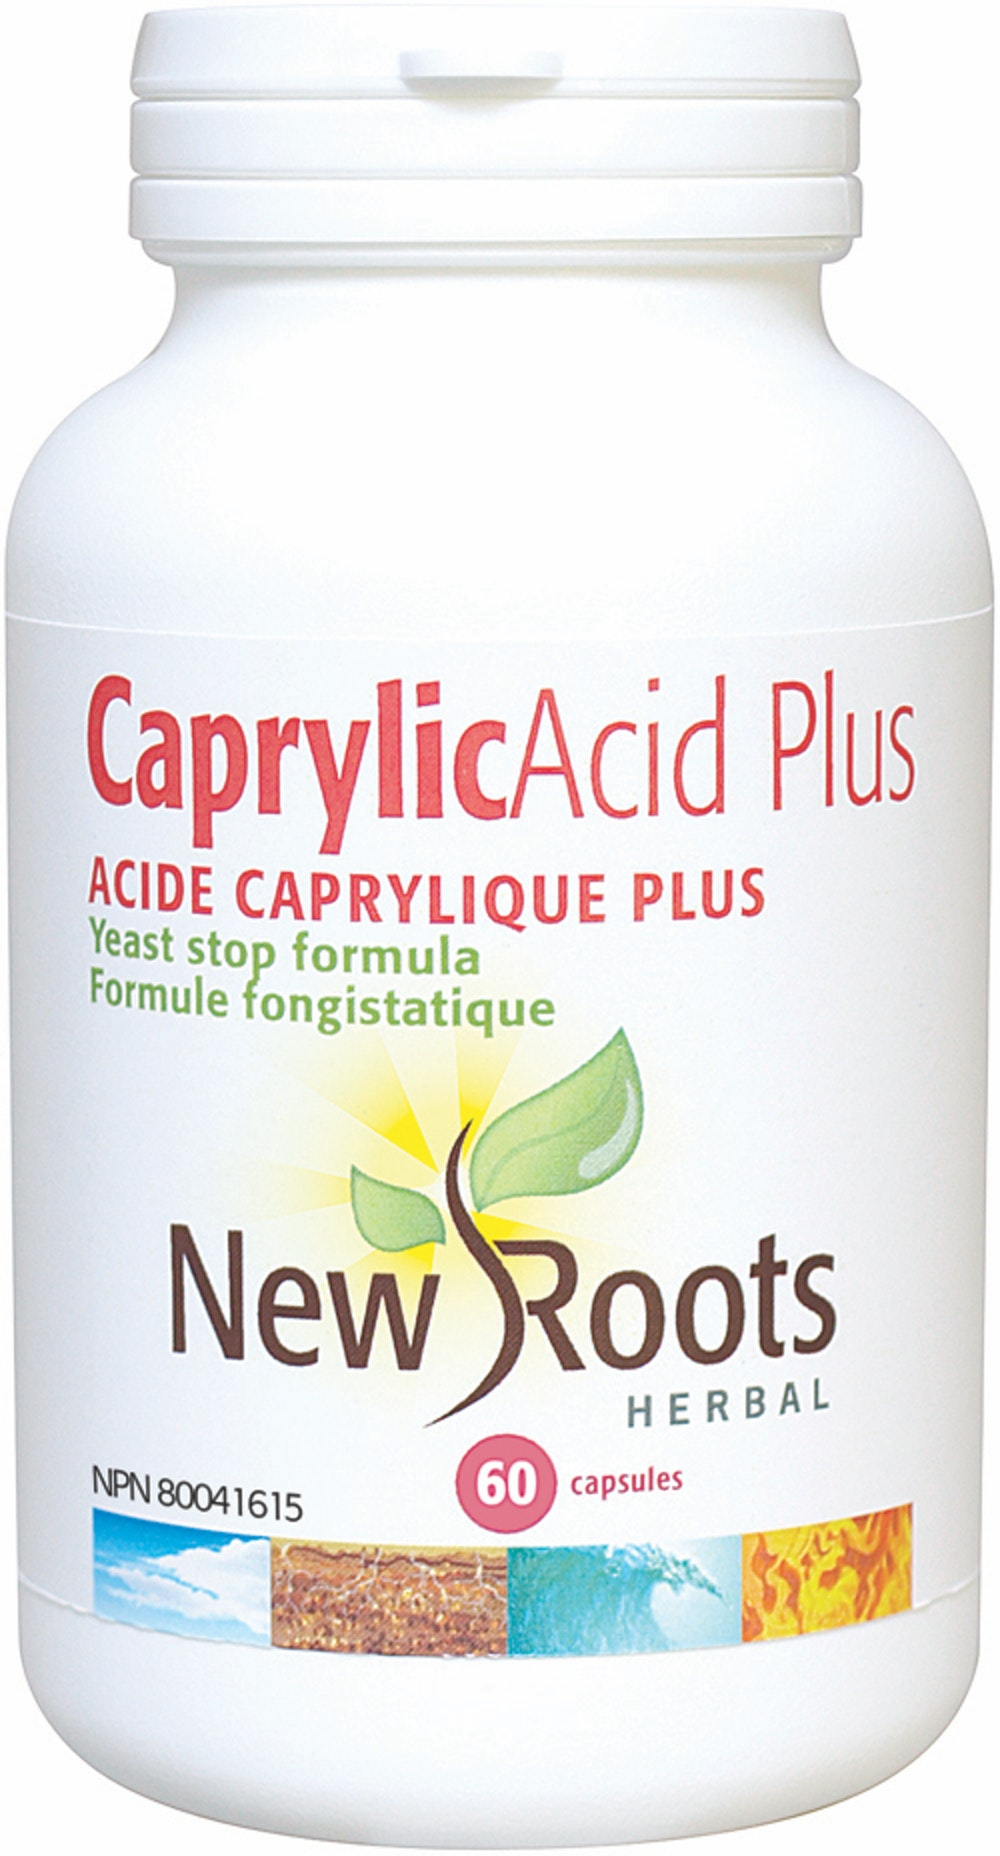 Acide Caprylique Plus